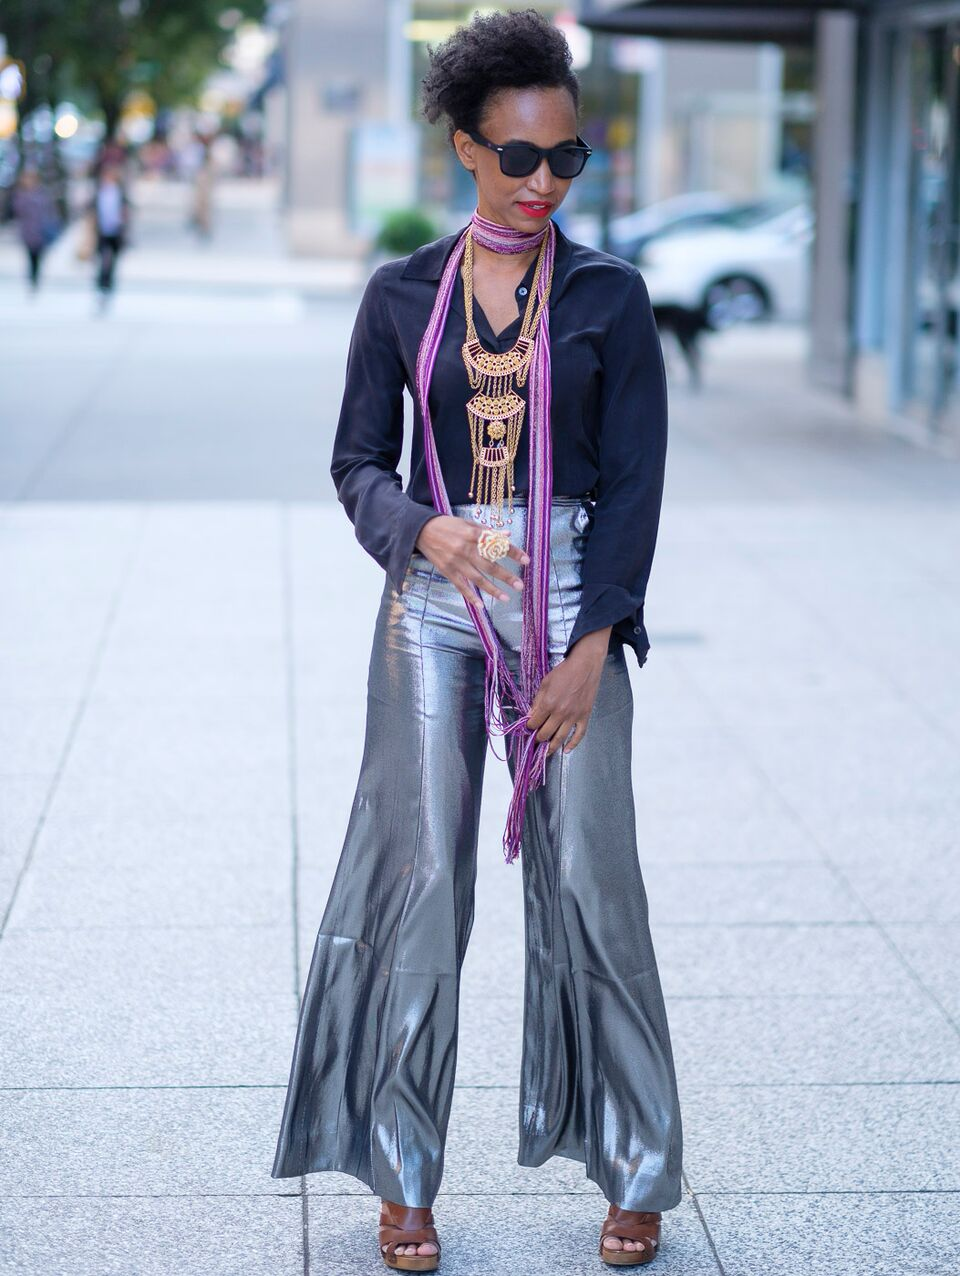 Christine_The_Syle_D'affaire_nyfw_wanda_nylon_silver_silk_blend_lame_wide_ leg_pants_missoni_scarf_gold__plated_jewelry_cognac_wedges_equipment_blouse_sunglasses_70s_vibes_samshbox_lipsticks.jpg